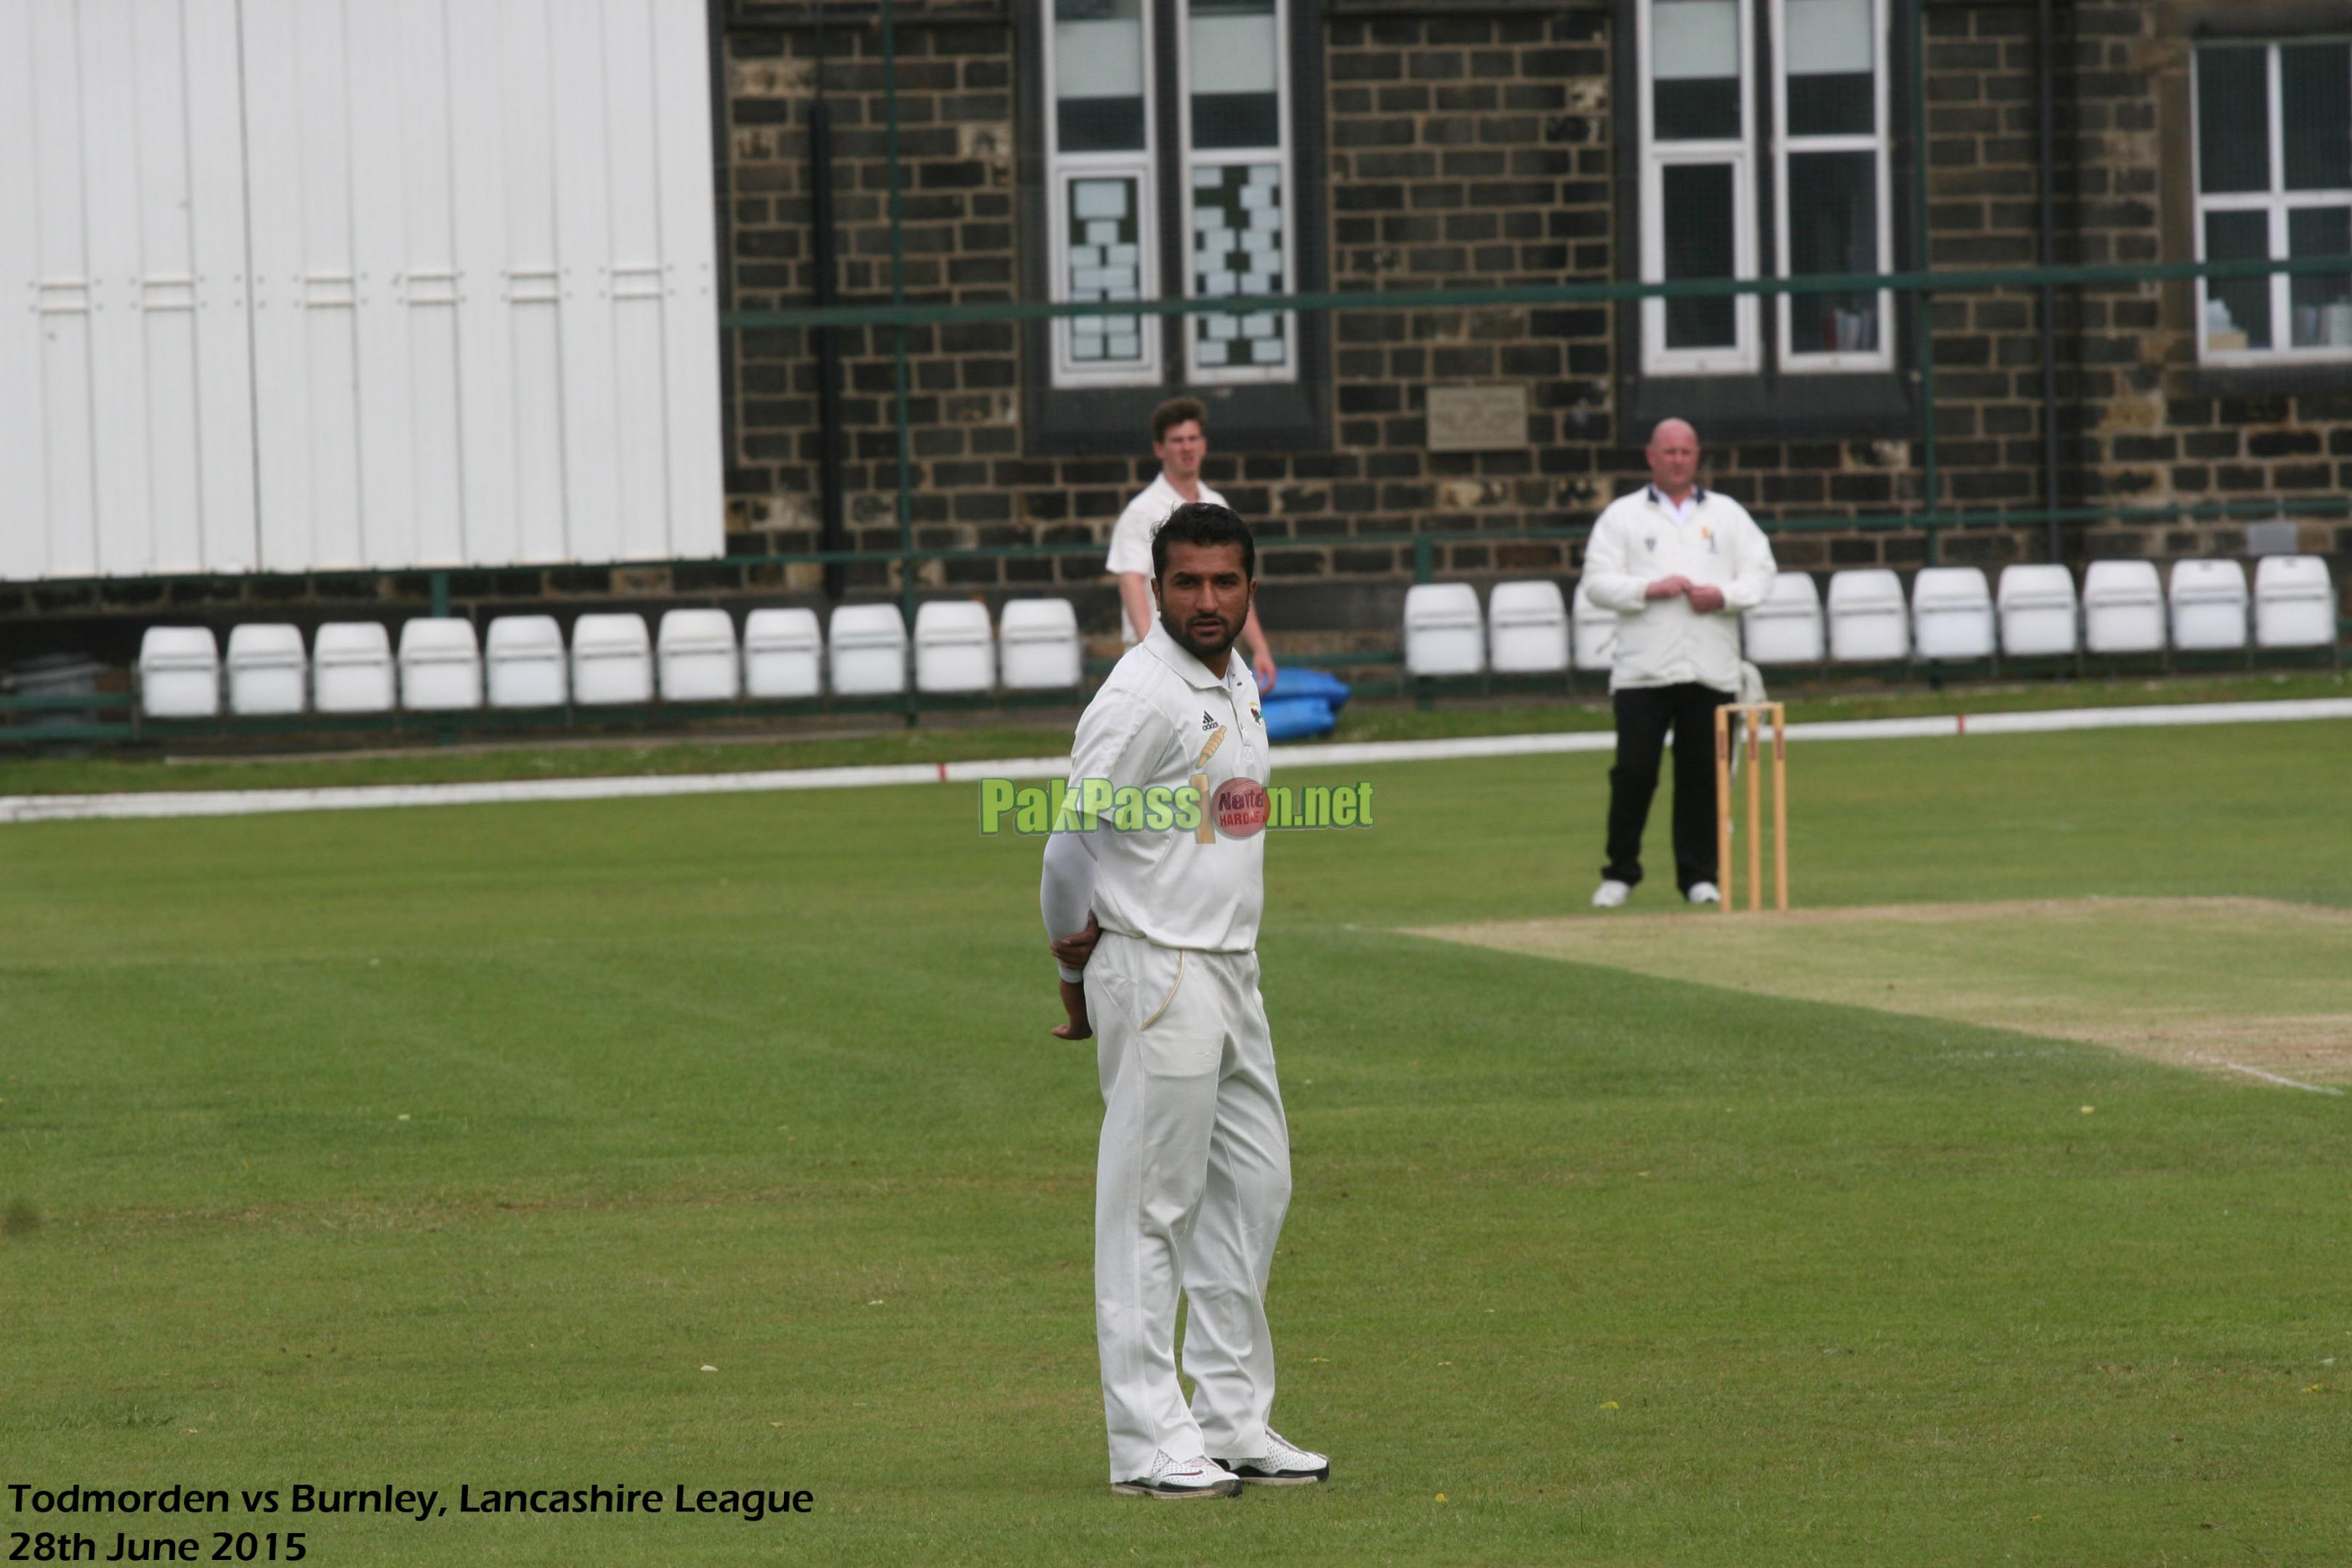 Pictures of Bilawal Bhatti playing in the Lancashire League